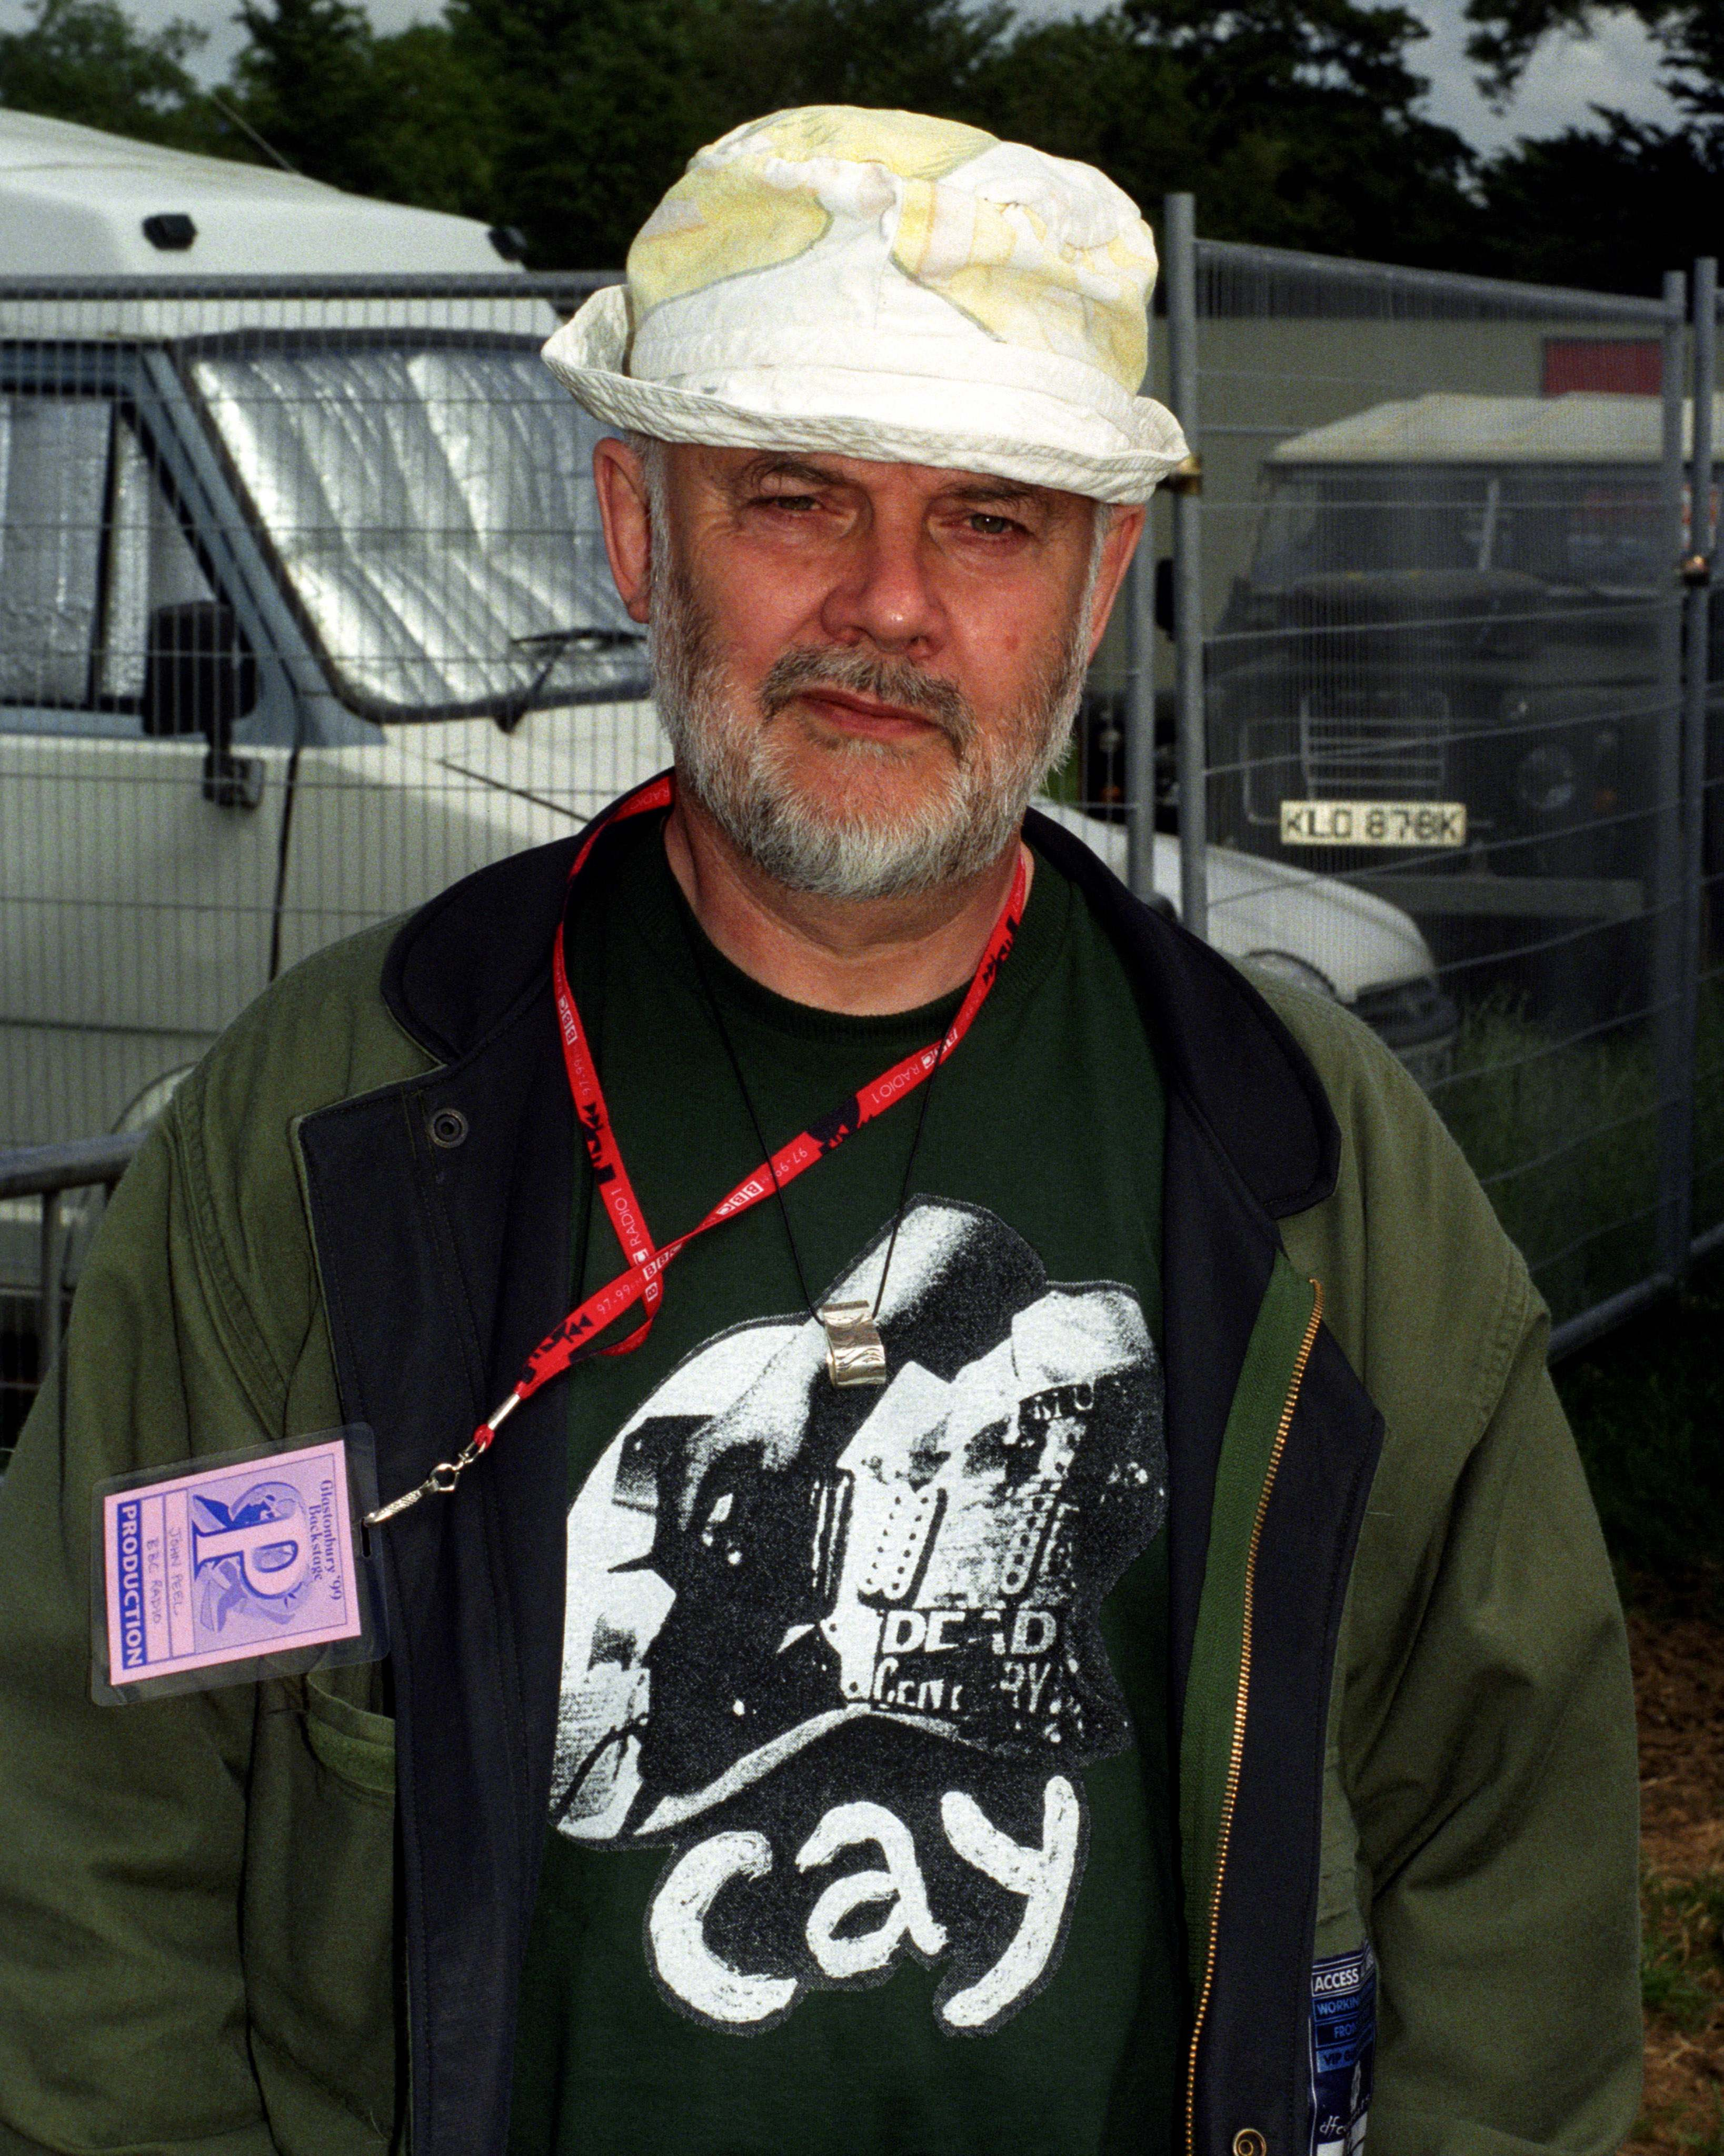 John Peel at Glastonbury in 1999. A stage at the festival is now named after him.